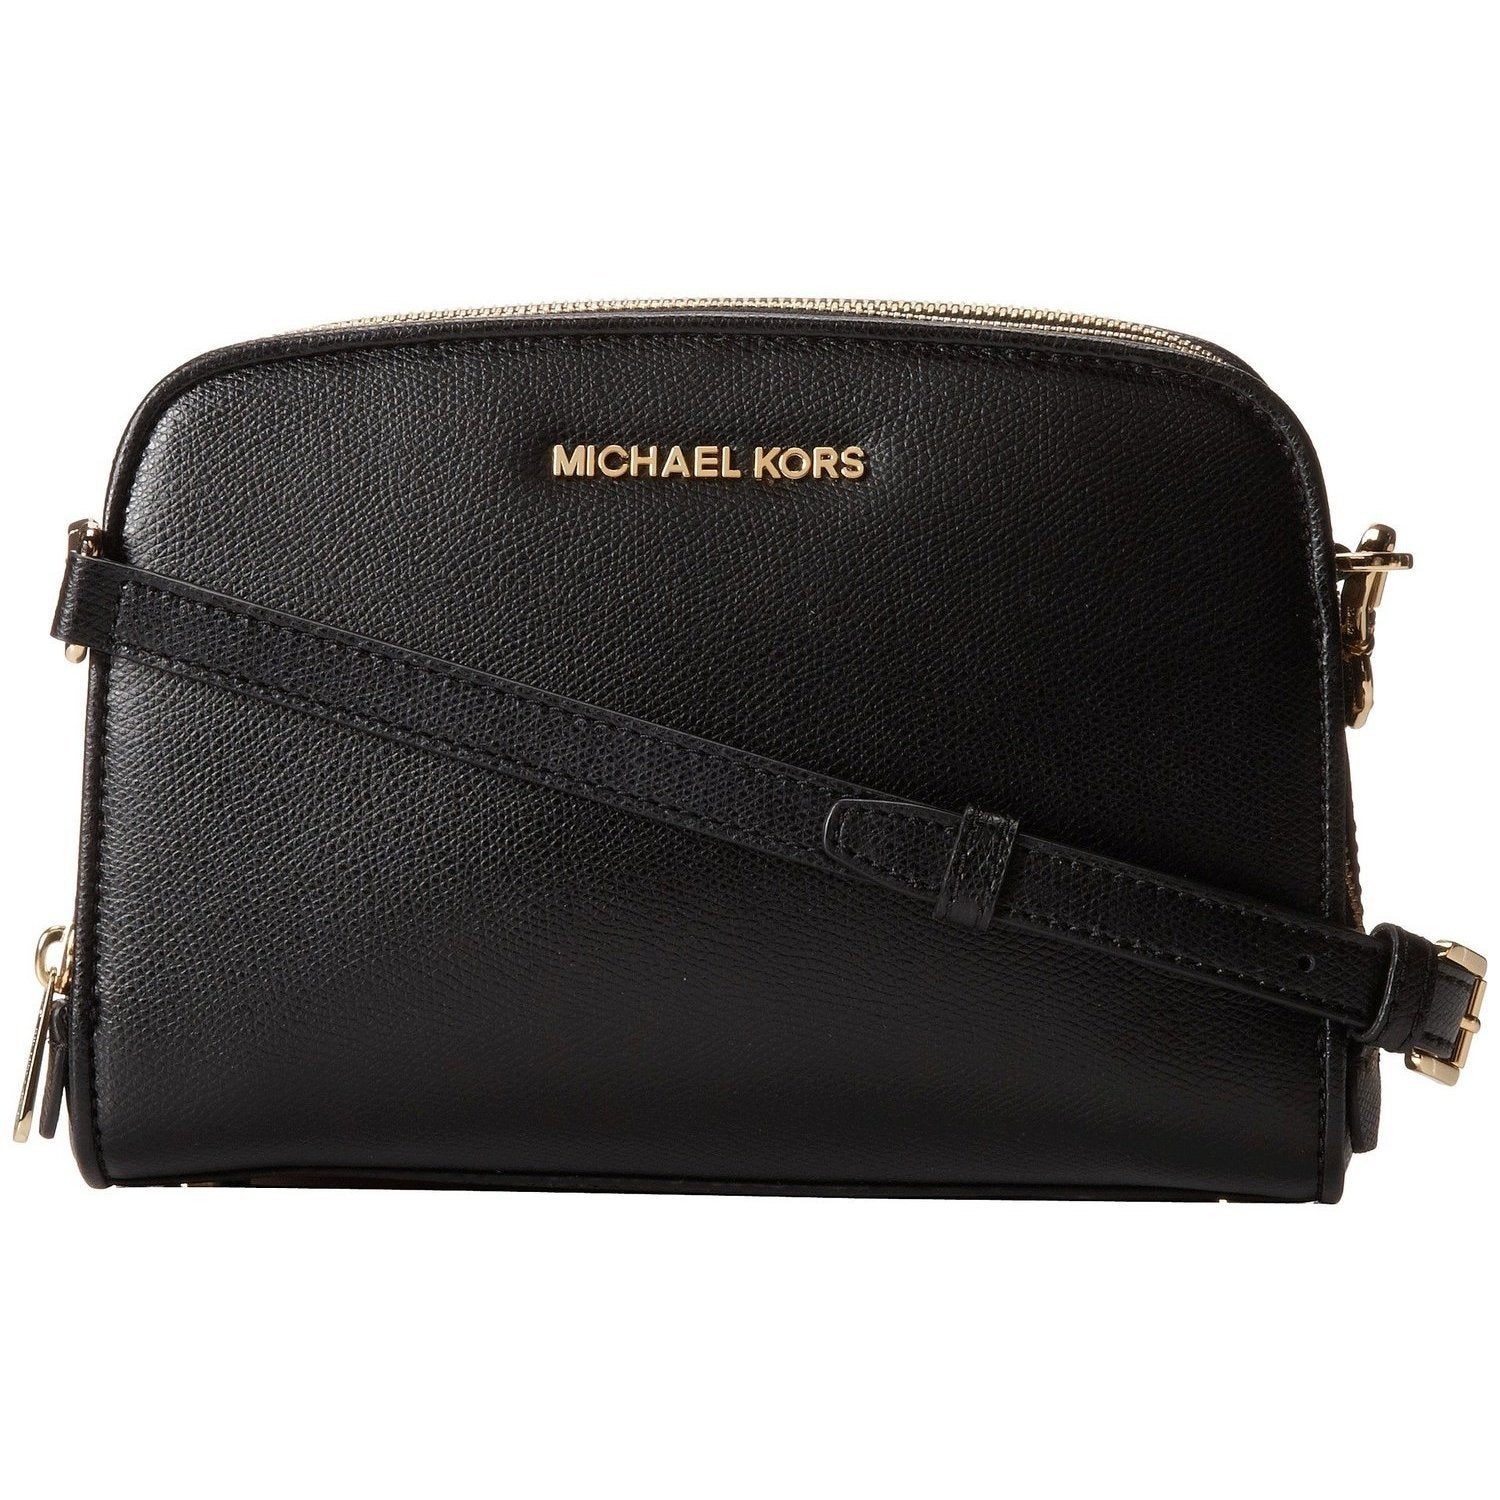 f7101621d815 Shop Michael Kors Reese Black Medium Messenger Bag - Free Shipping Today -  Overstock - 10562324